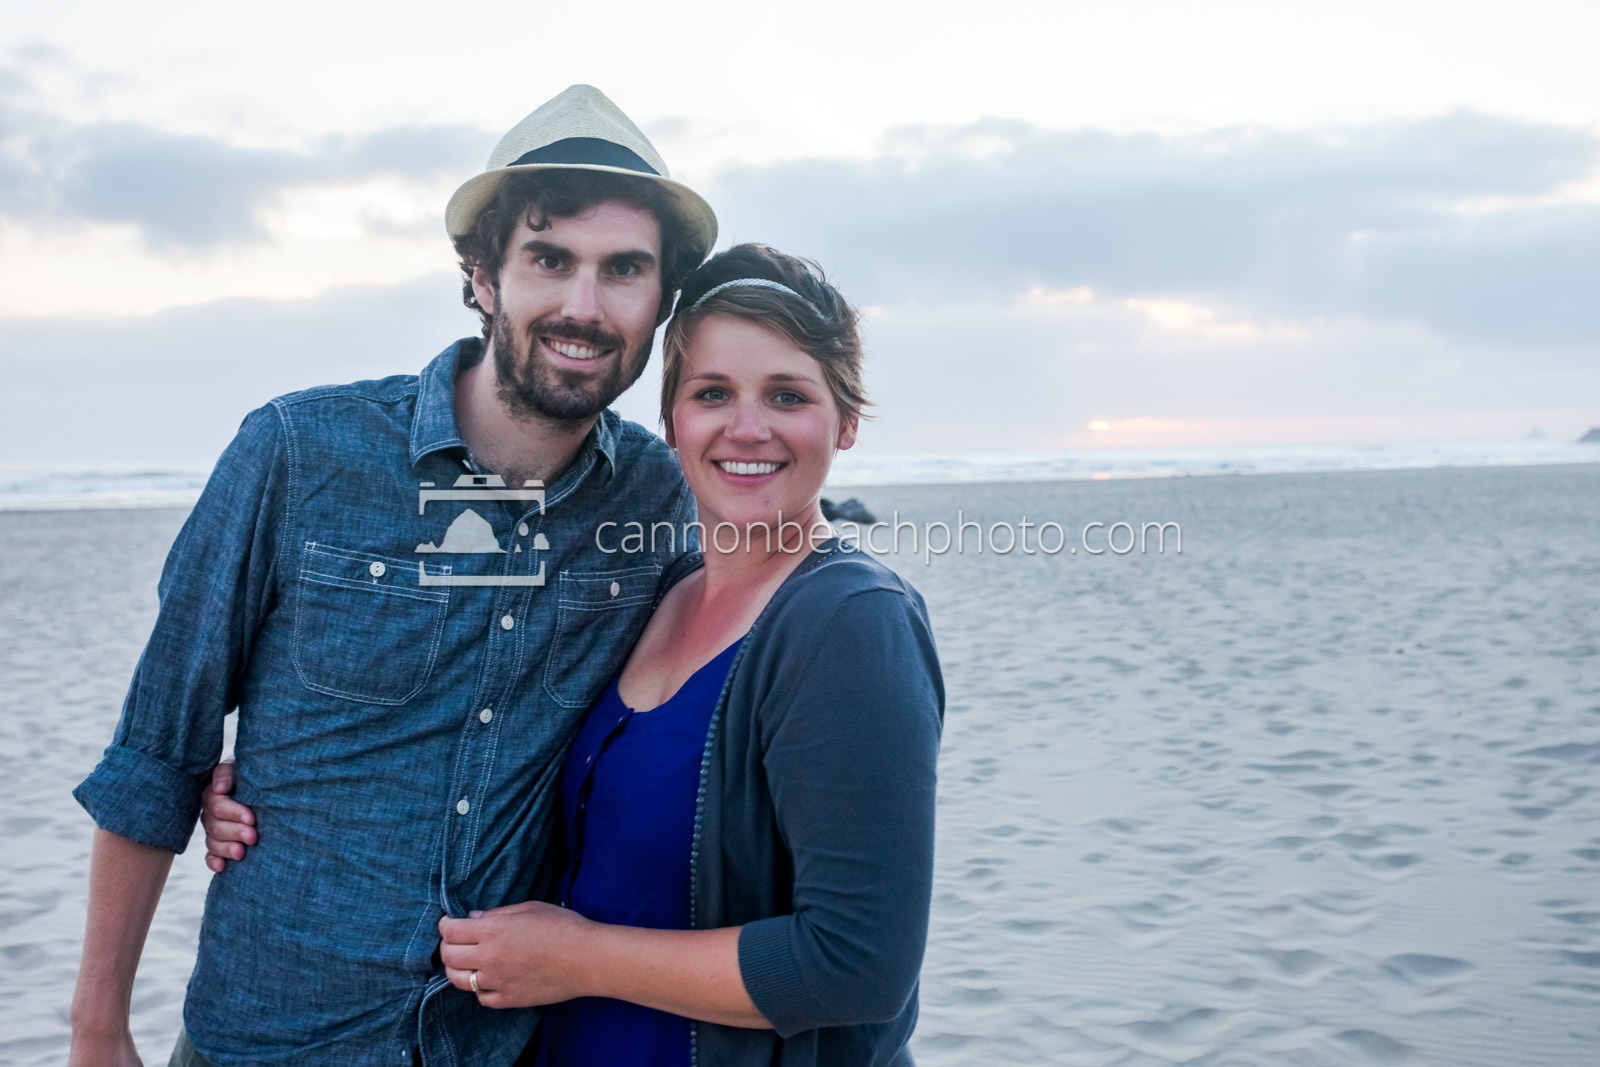 Young Couple Smiling on the Beach